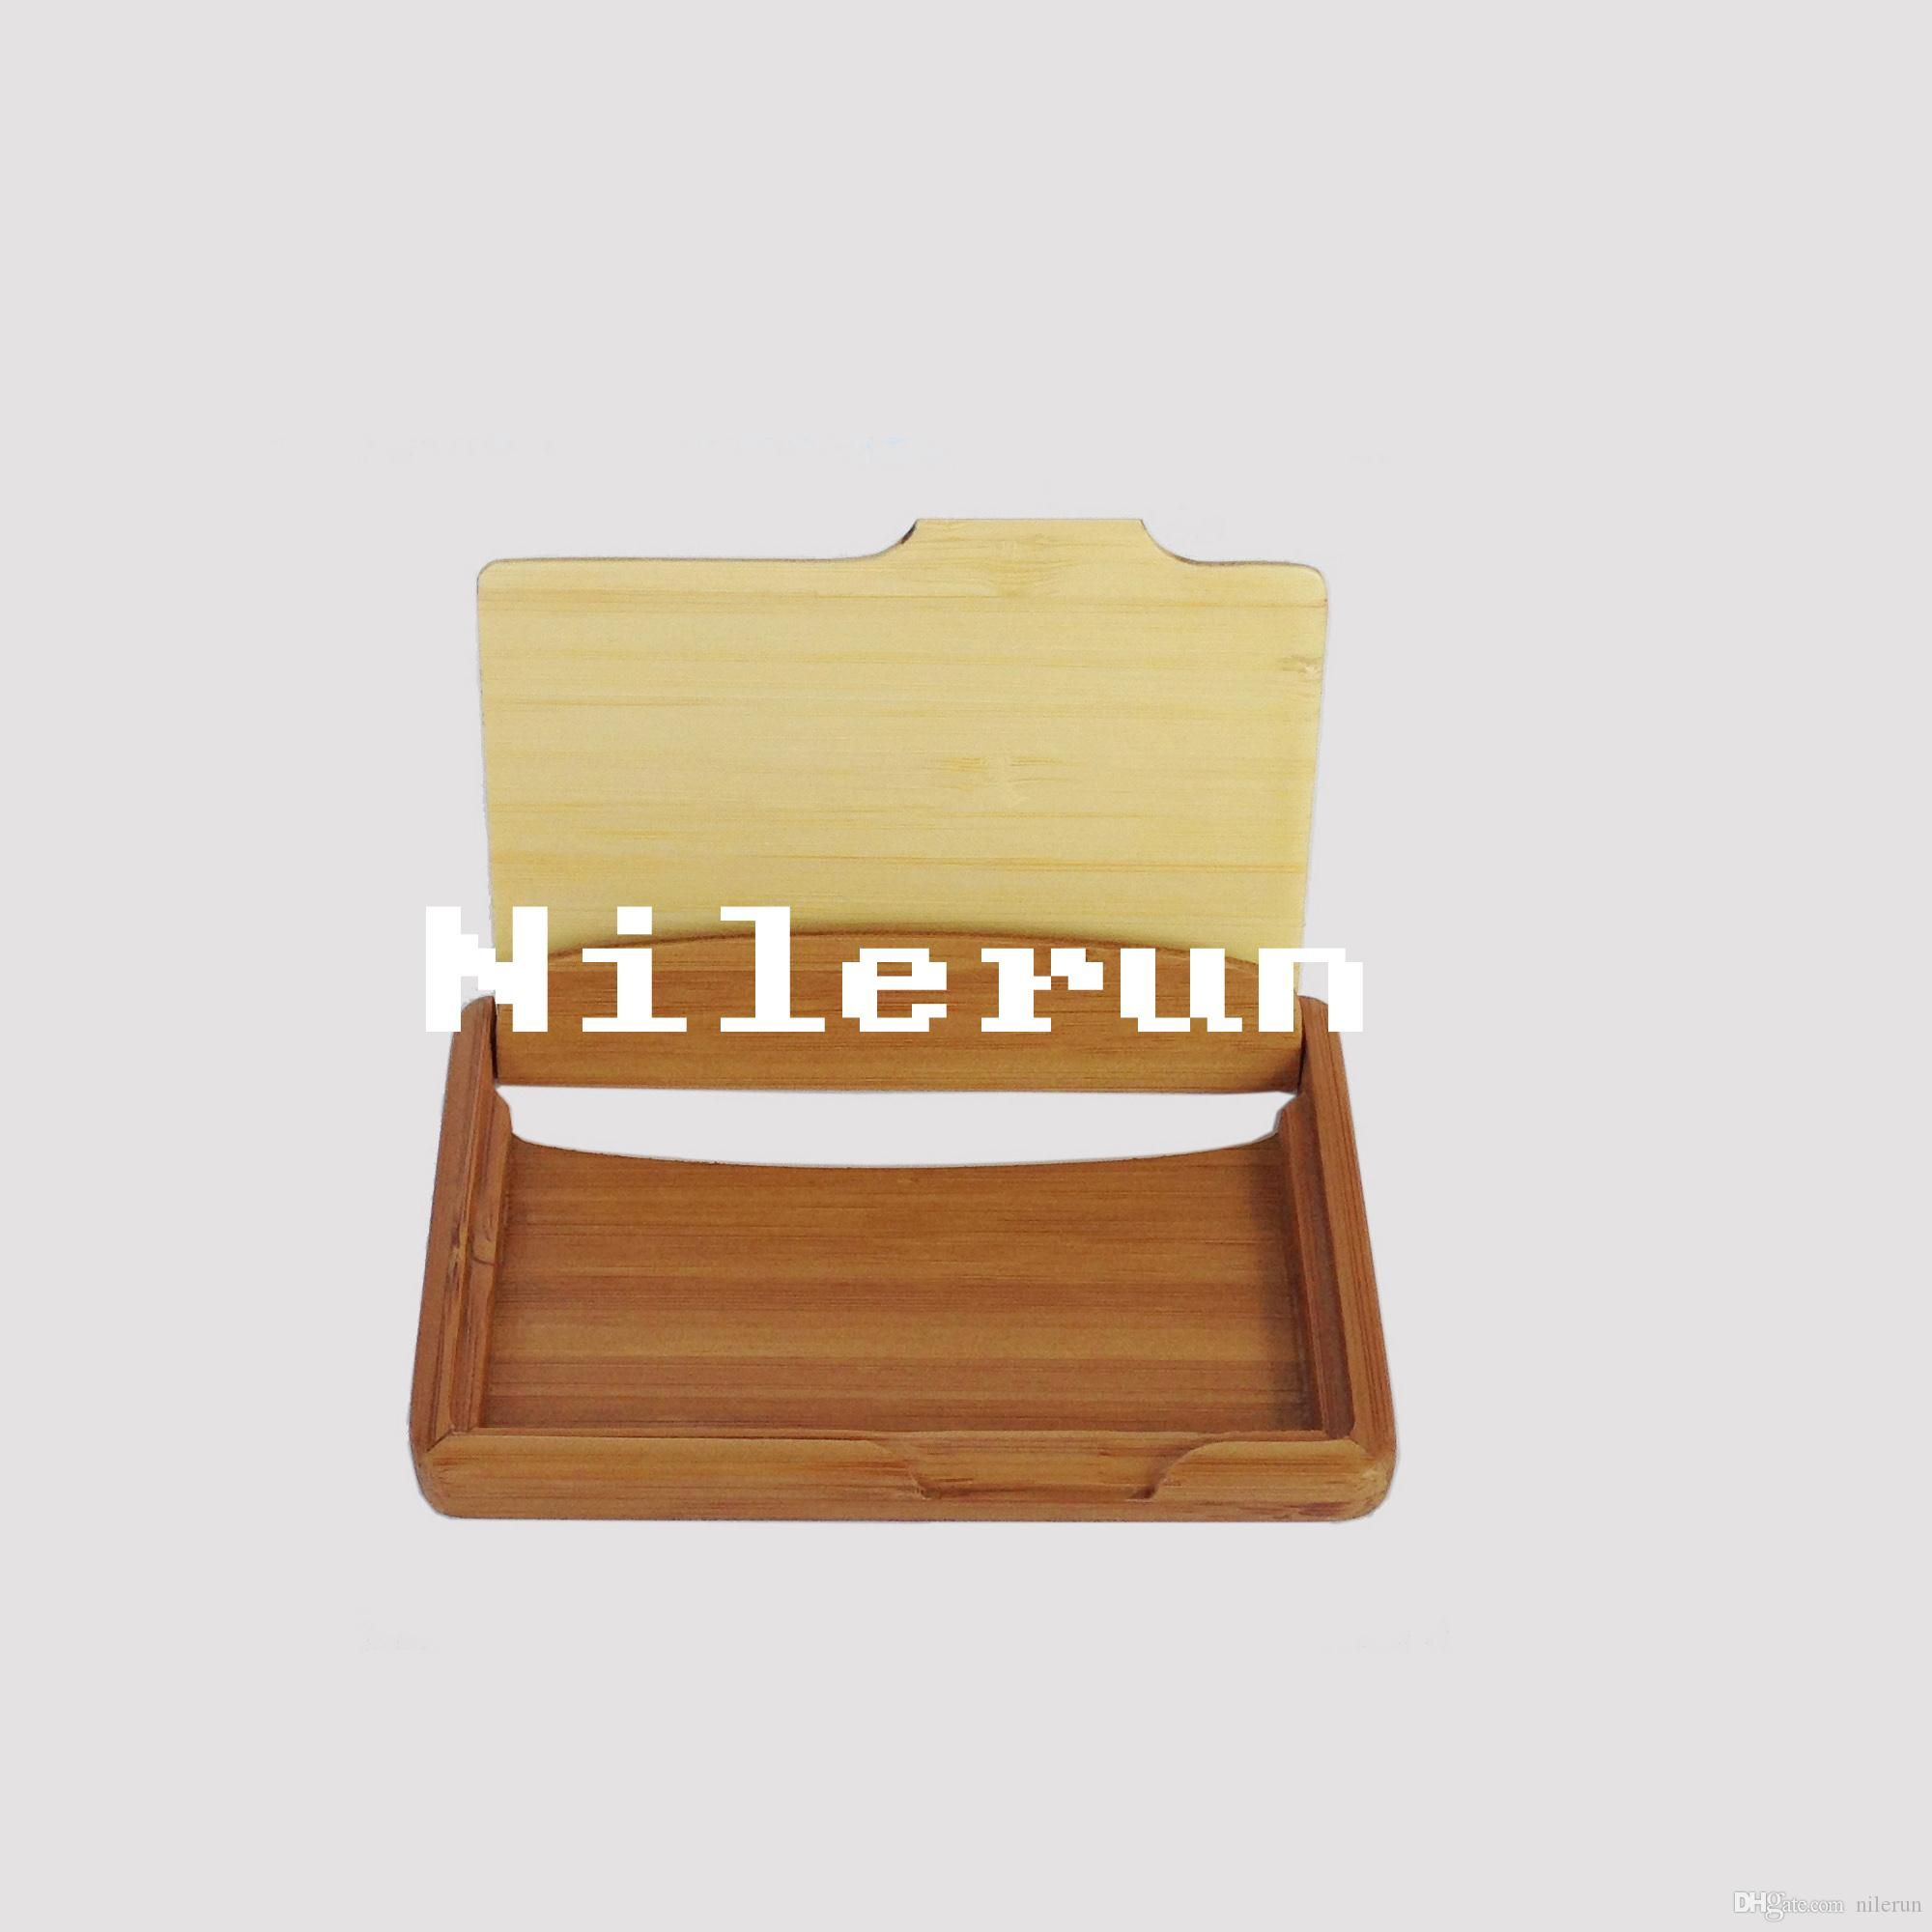 Business name card holder images free business cards business name card holder images free business cards bamboo business name card case box holder bamboo magicingreecefo Gallery